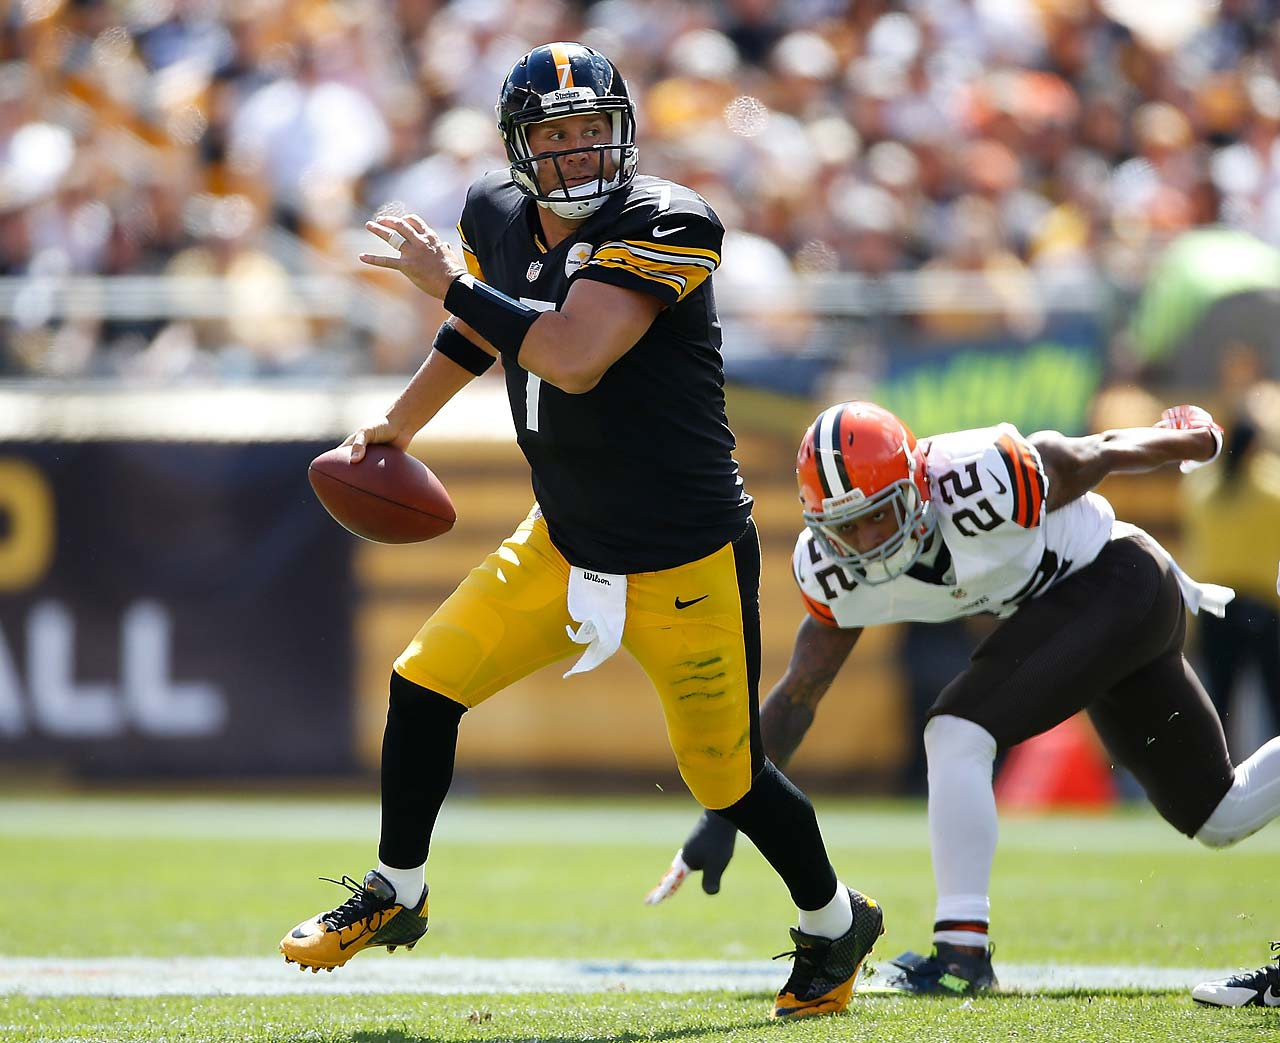 Ben Roethlisberger looks to pass downfield in front of Buster Skrine of the Cleveland Browns.